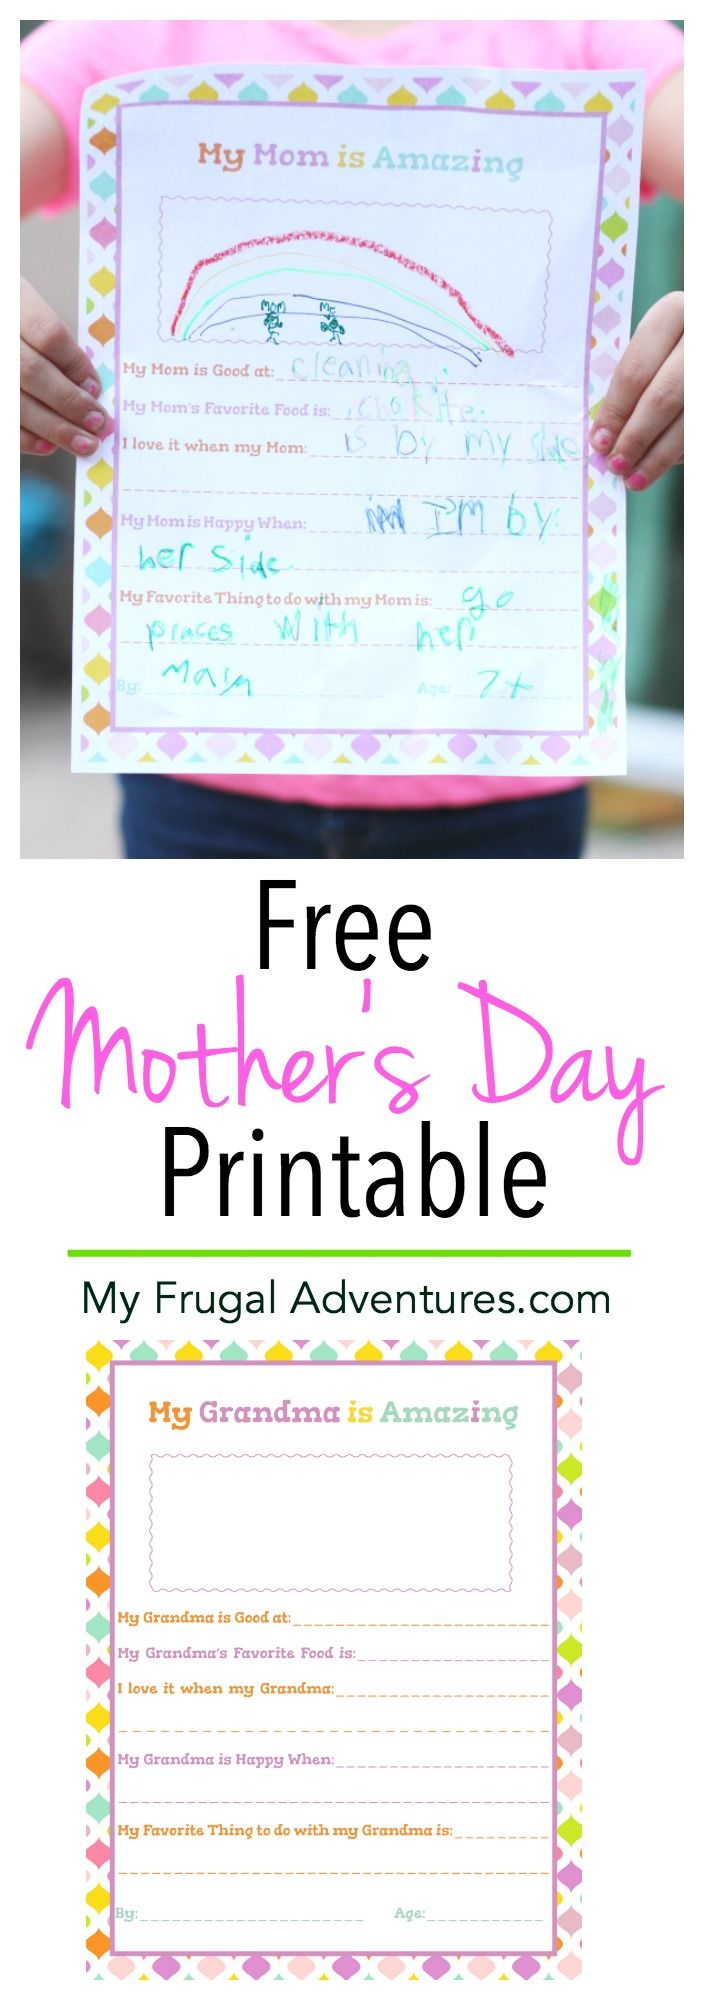 f9585bf2017 Adorable free printable Mother s Day questionnaire for Mom or for Grandma  to celebrate  MothersDayMovie in theaters 4 29. Perfect keepsake gift idea  from ...